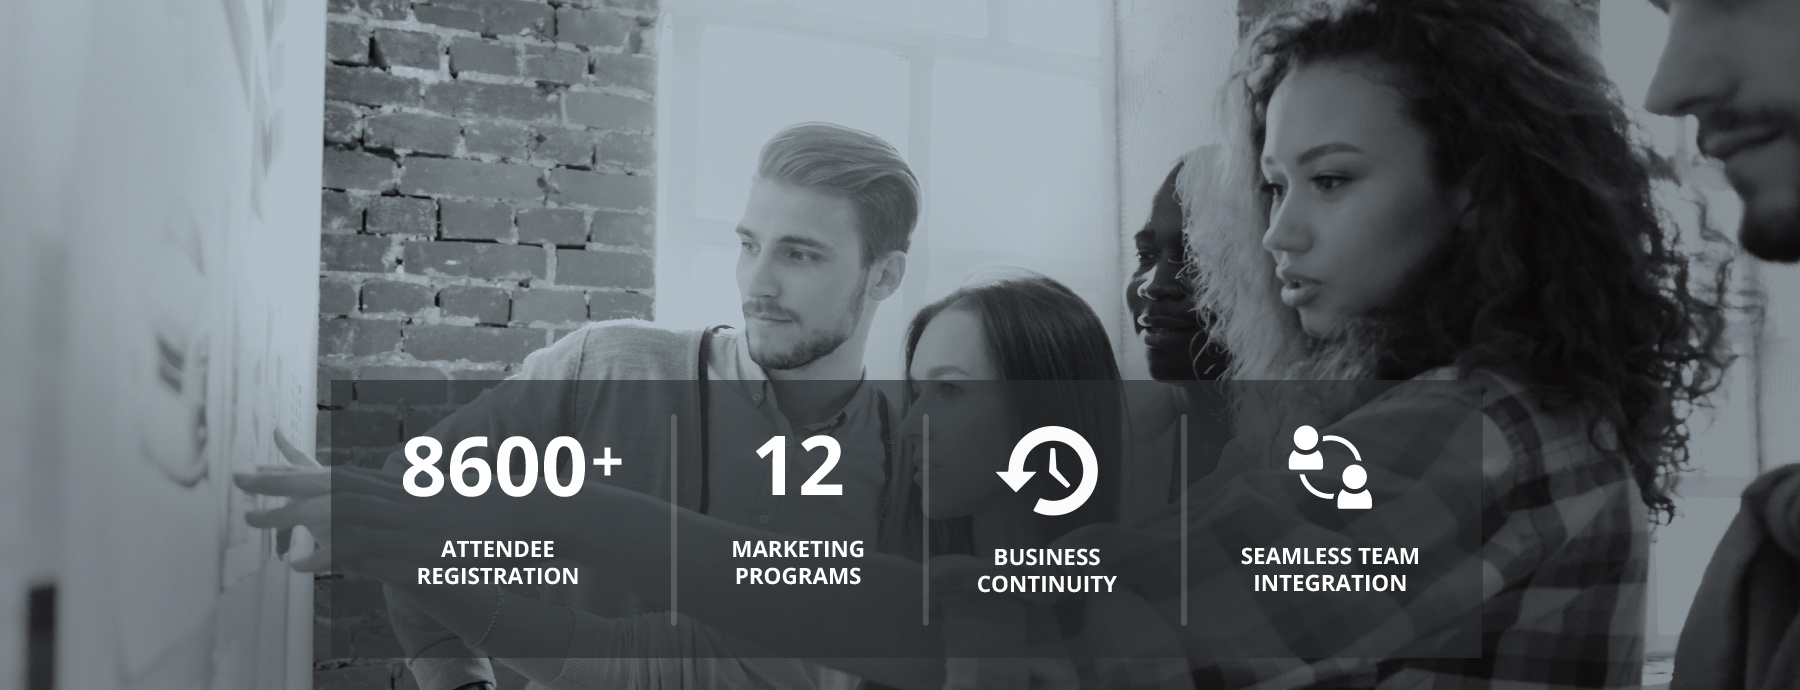 Case Study | Managed Marketing Service for User Conference